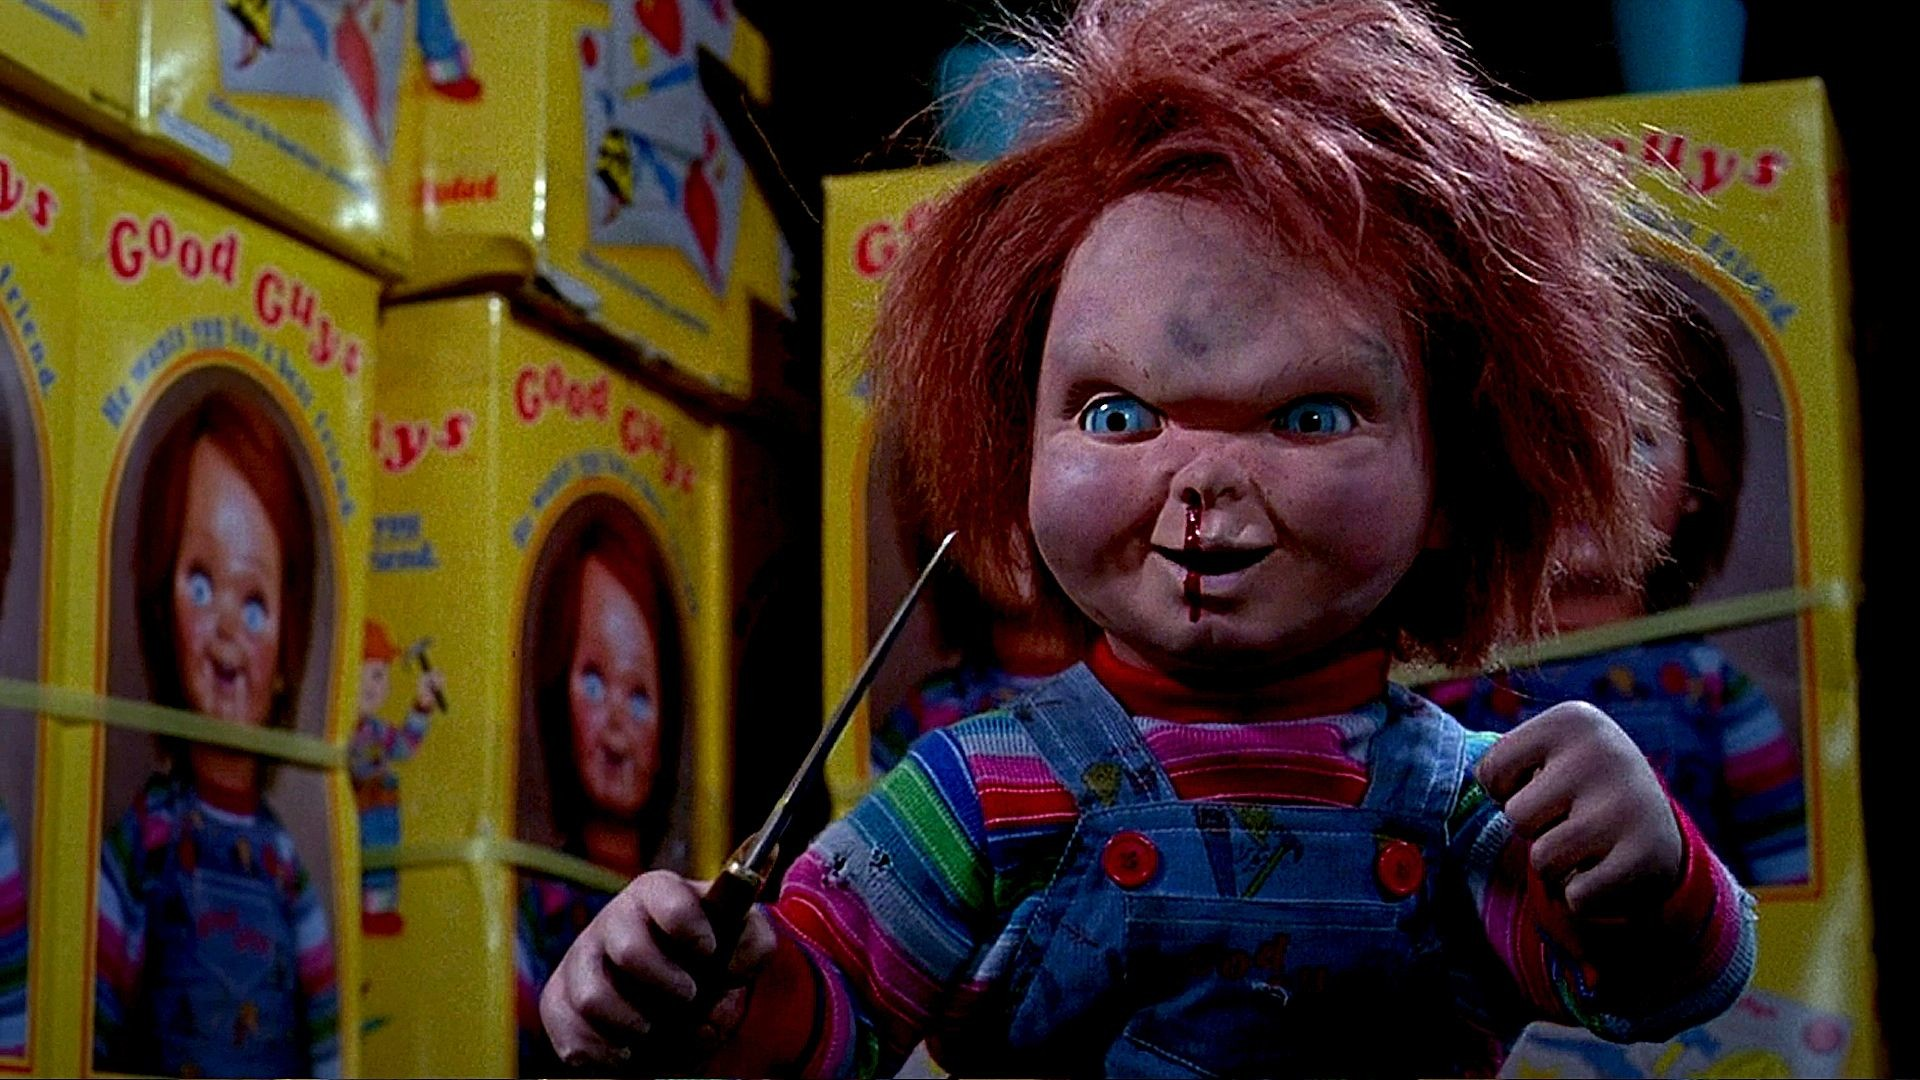 1920x1080 John Lafia's 'Child's Play 2' — Courtesy of Universal Pictures